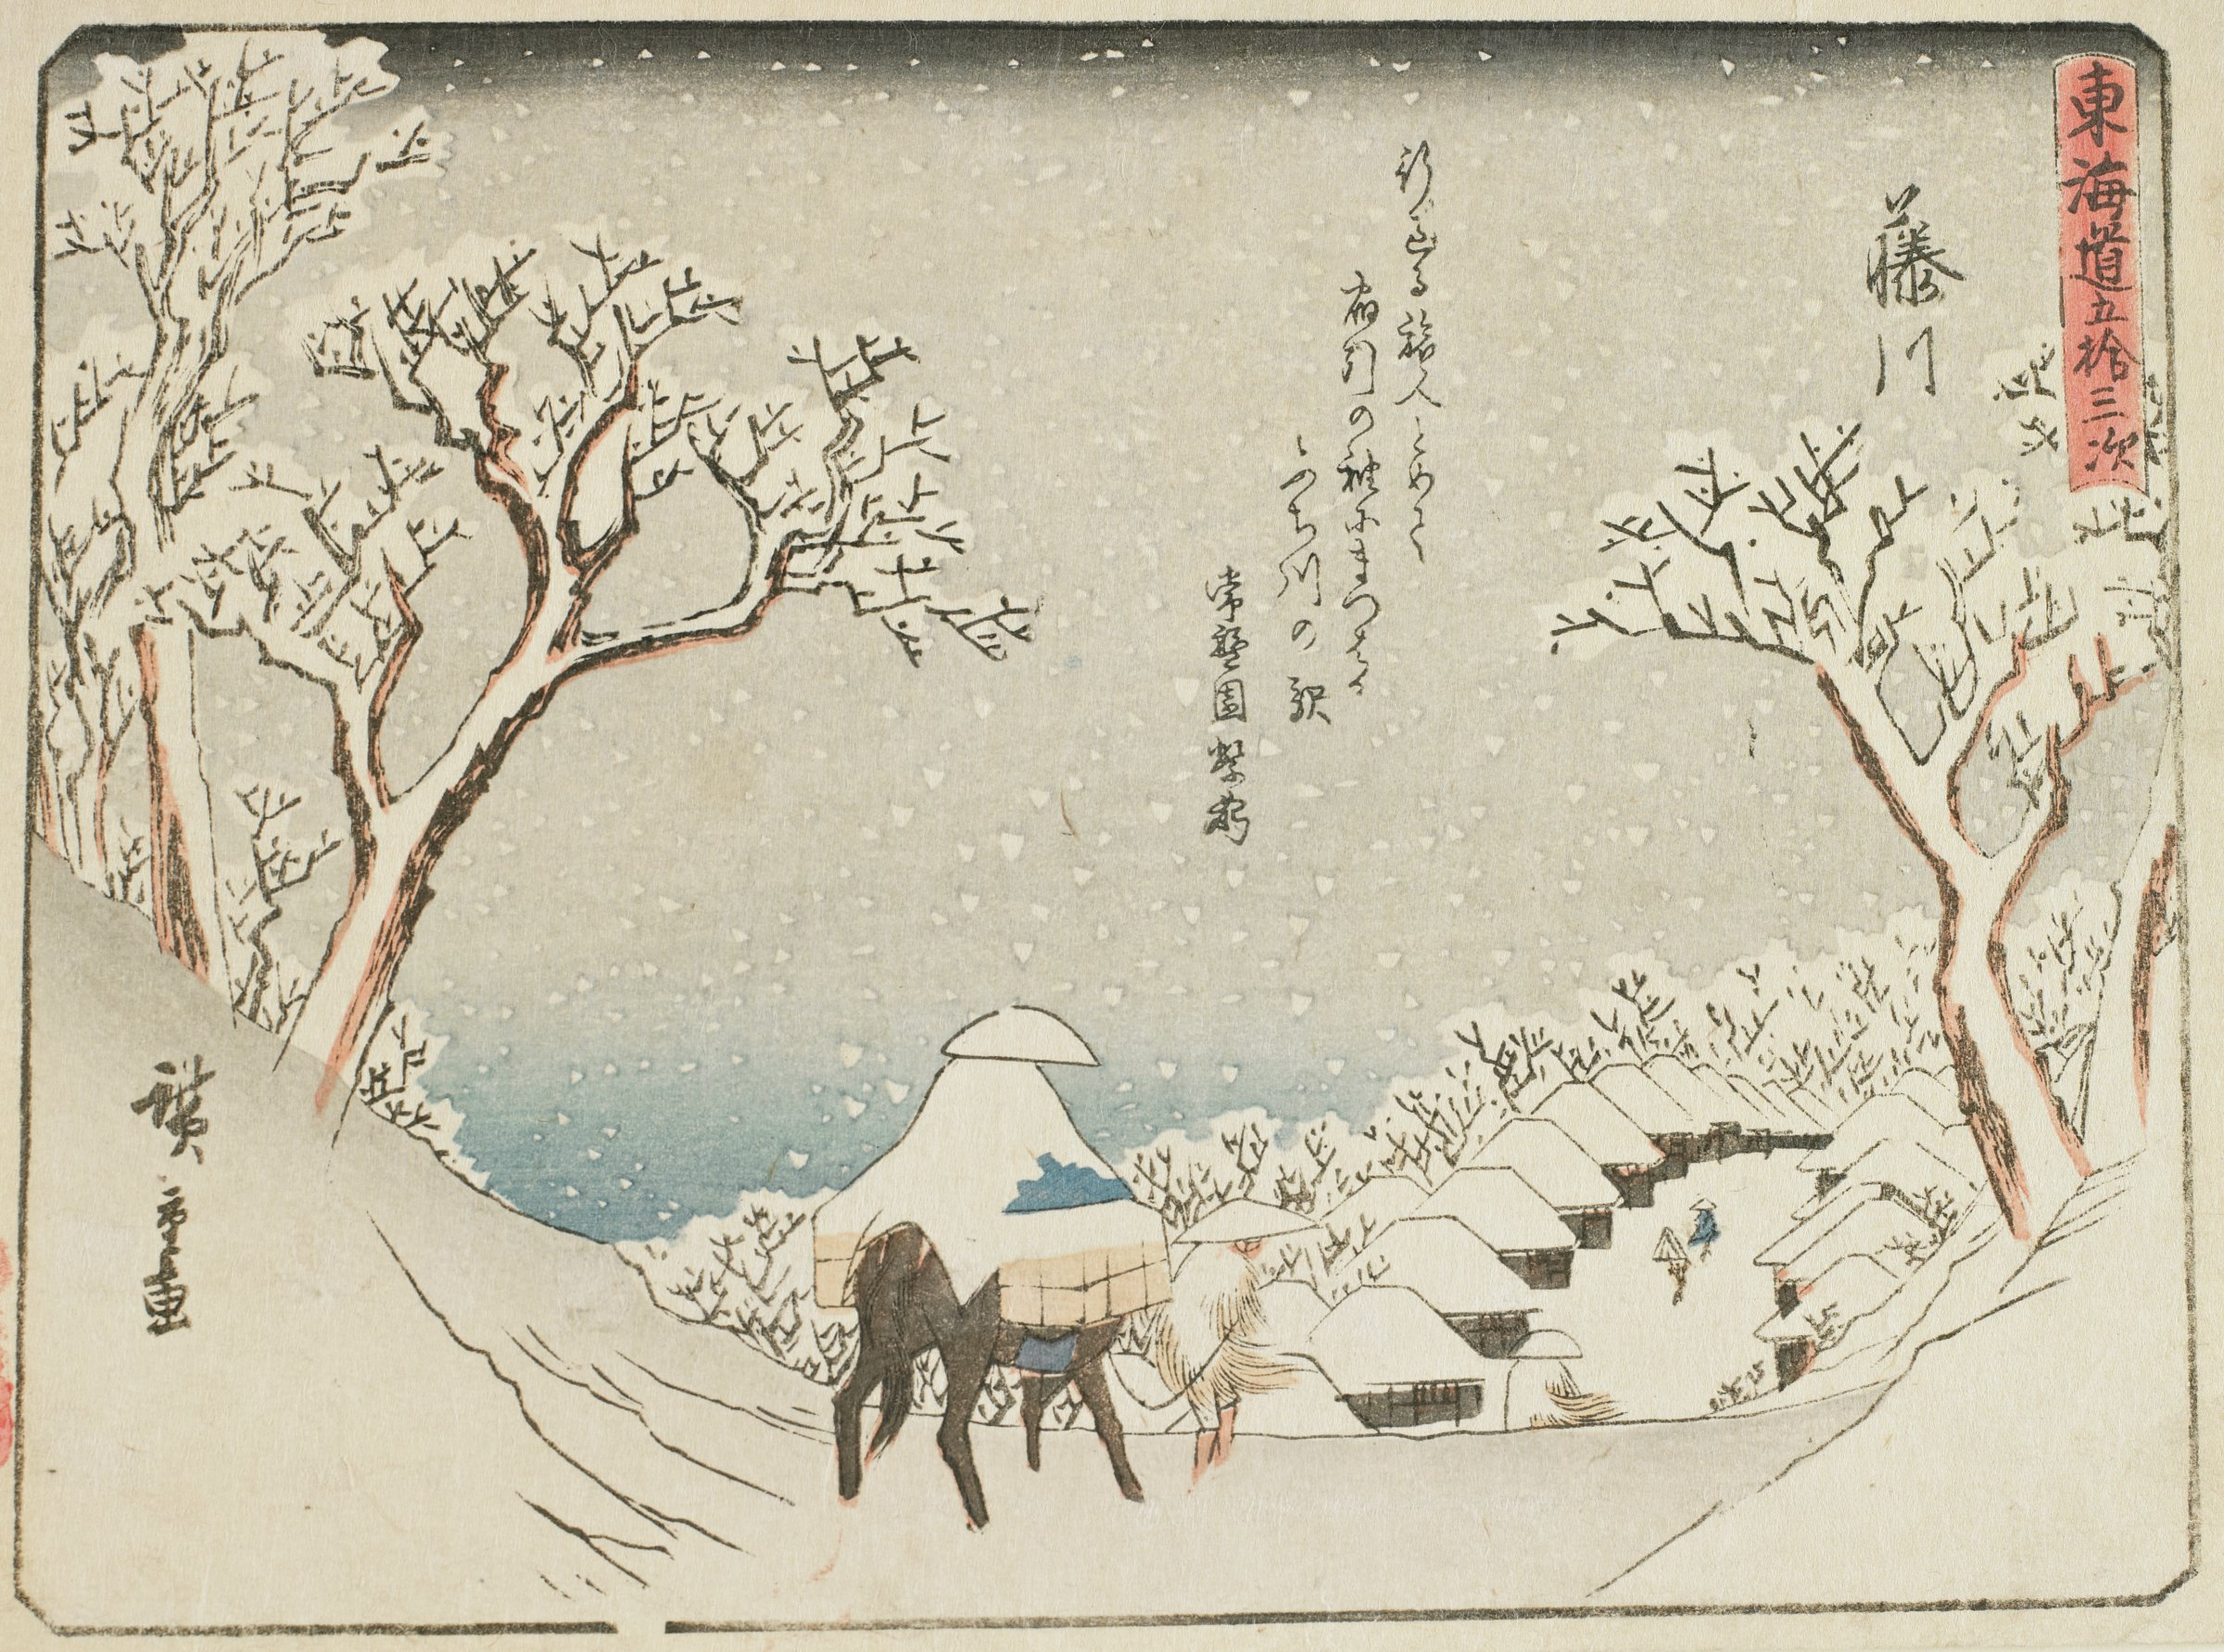 Two figures, one on horseback and one leading the horse, trudging through a snow covered mountain pass towards a village in the distance below; three other distant figures along road between buildings.